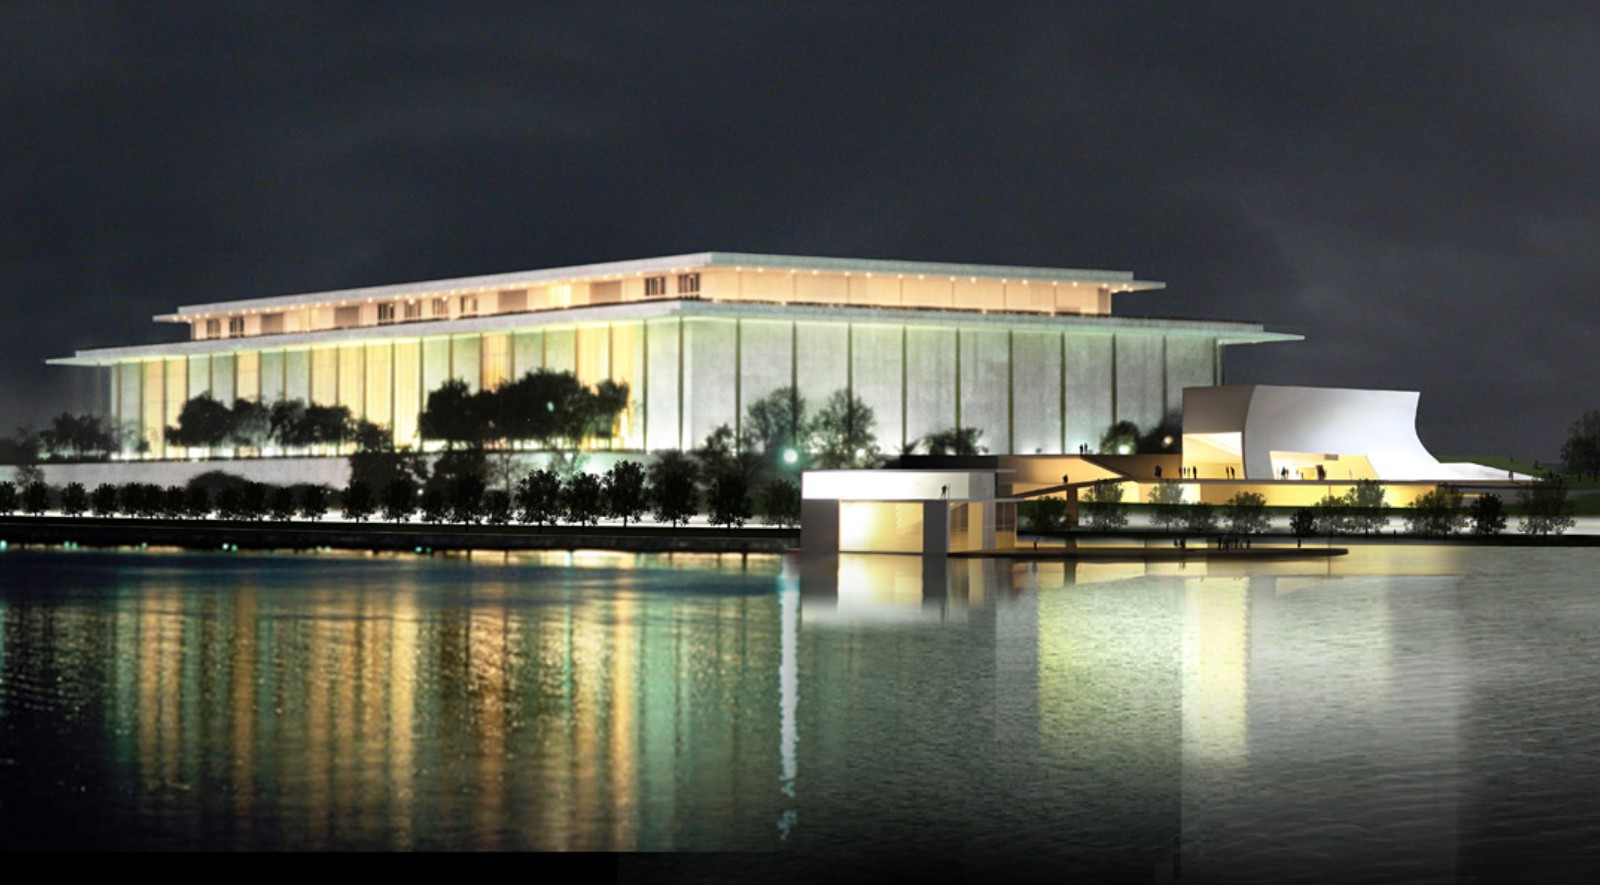 The John Kennedy Center for The Performing Arts